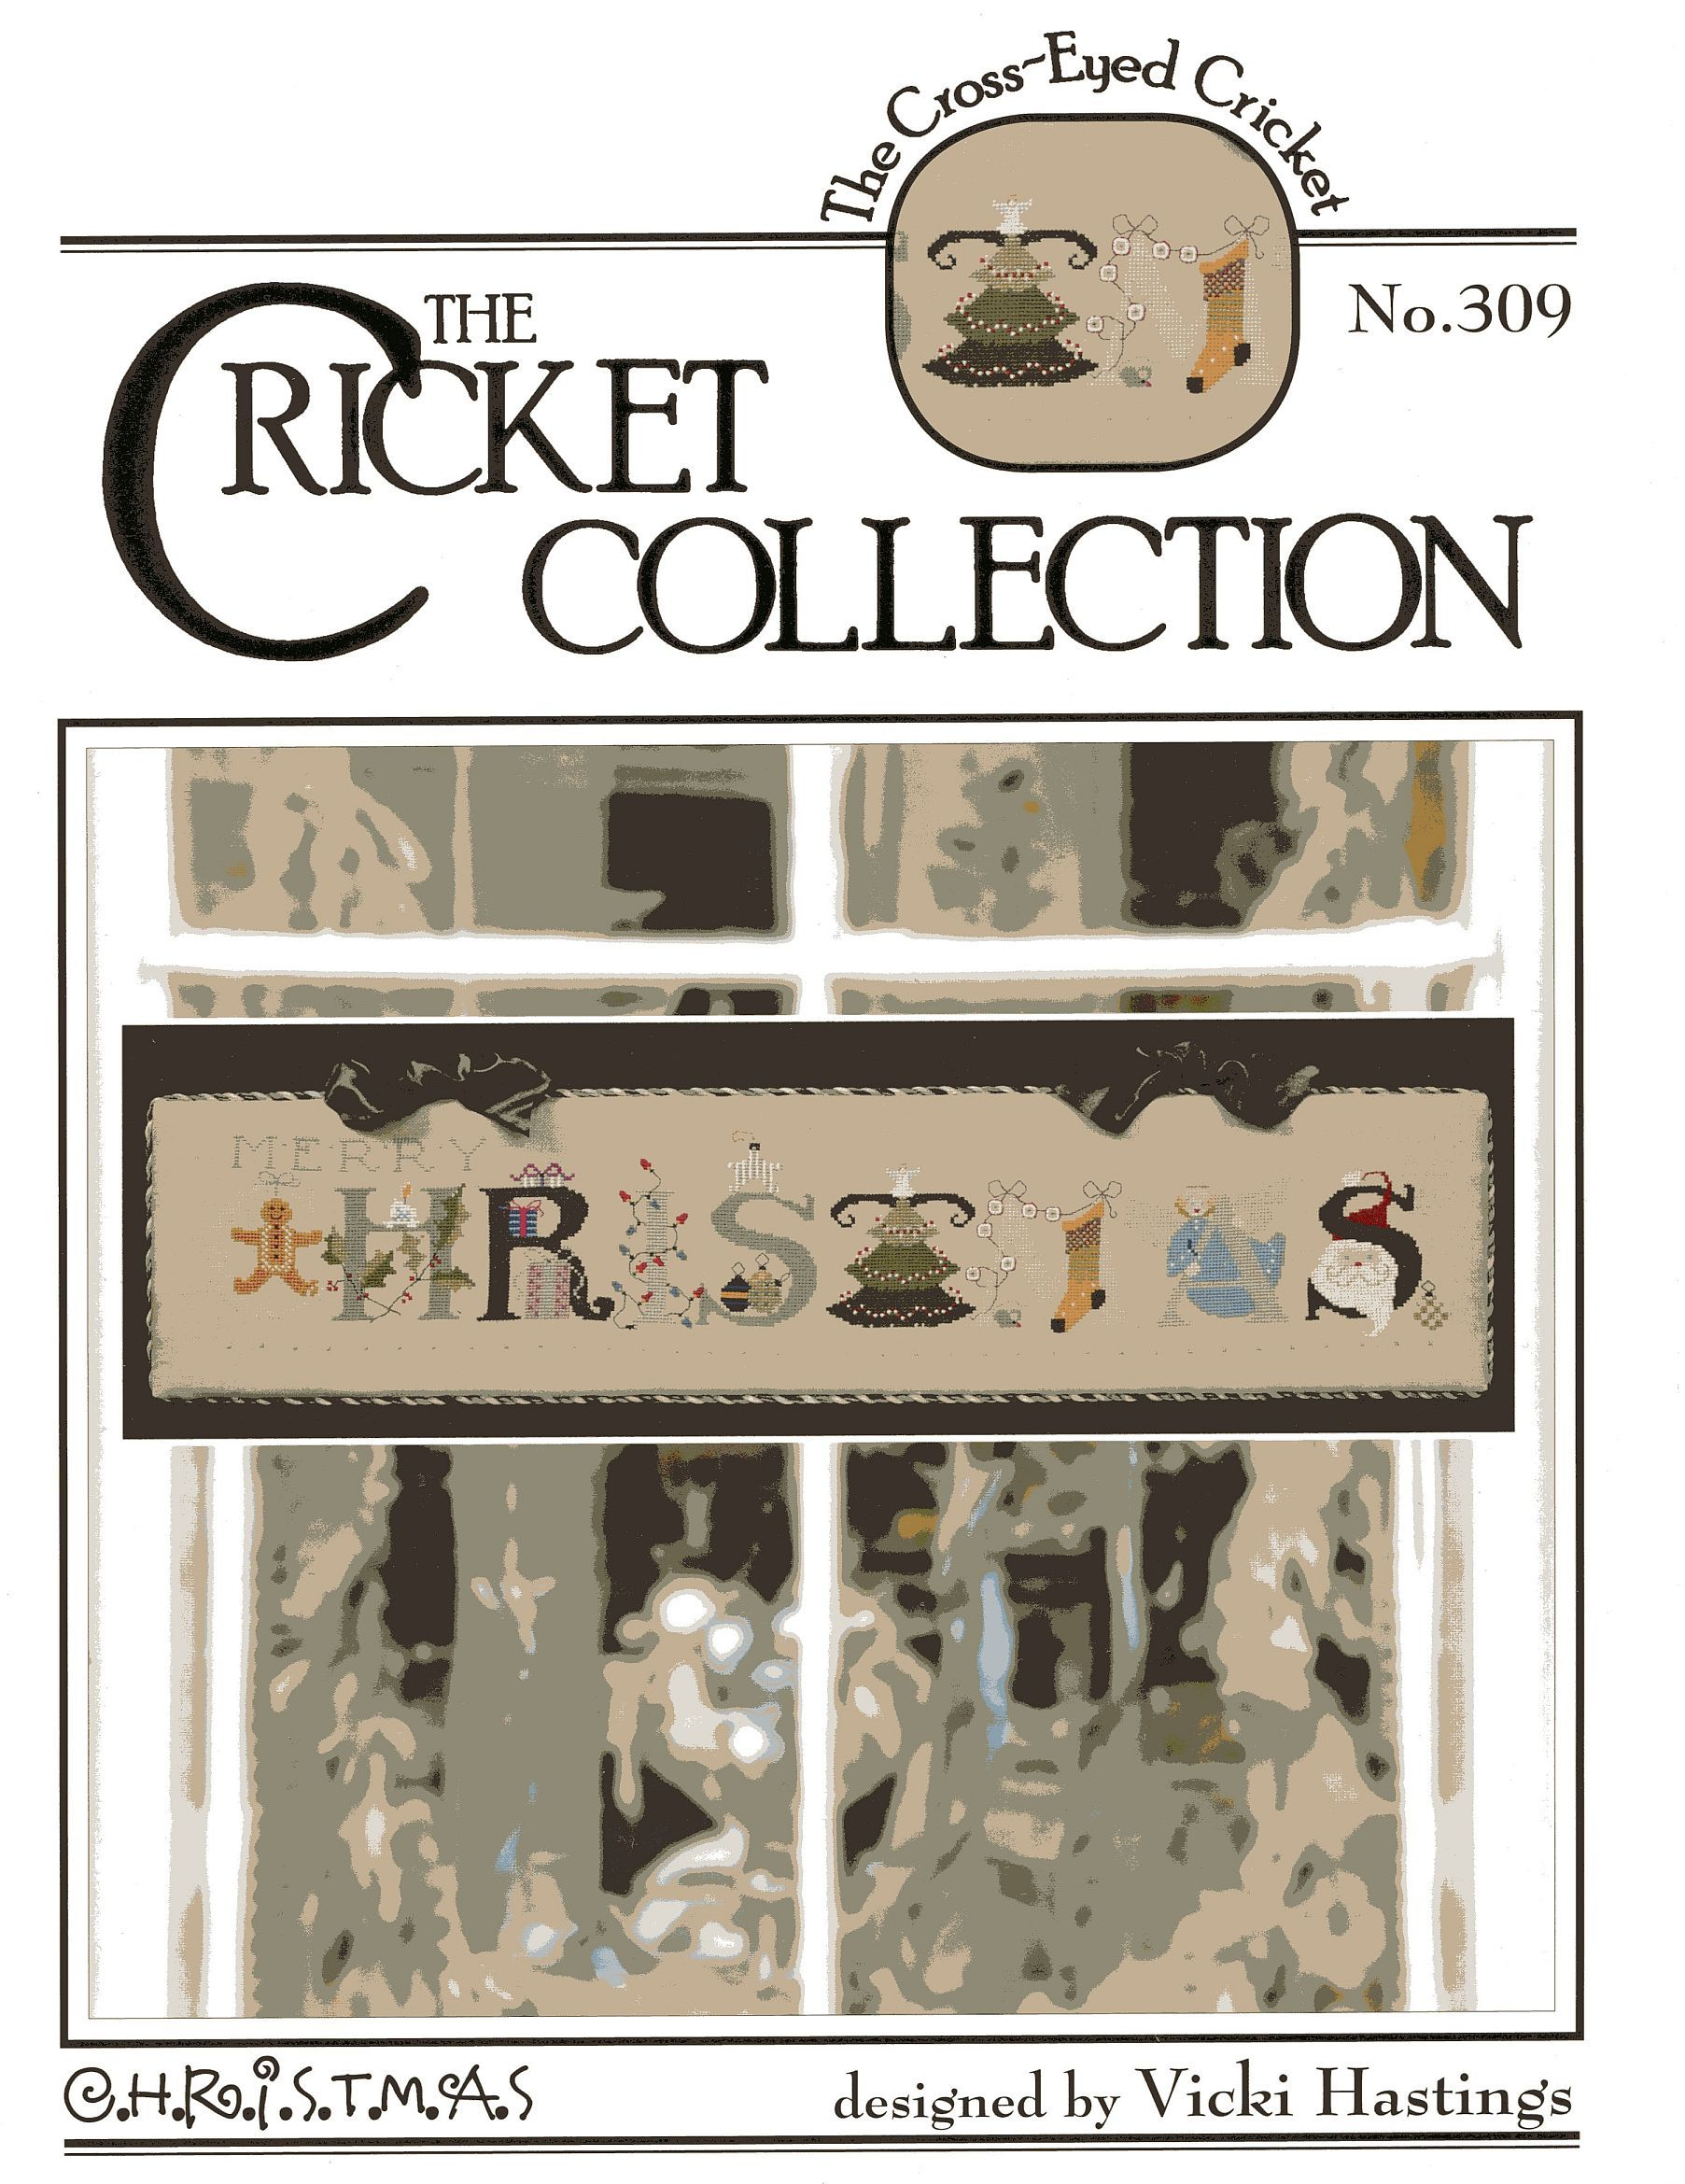 CRICKET COLLECTION CHRISTMAS 01 | CS THE CRICKET COLLECTION ...